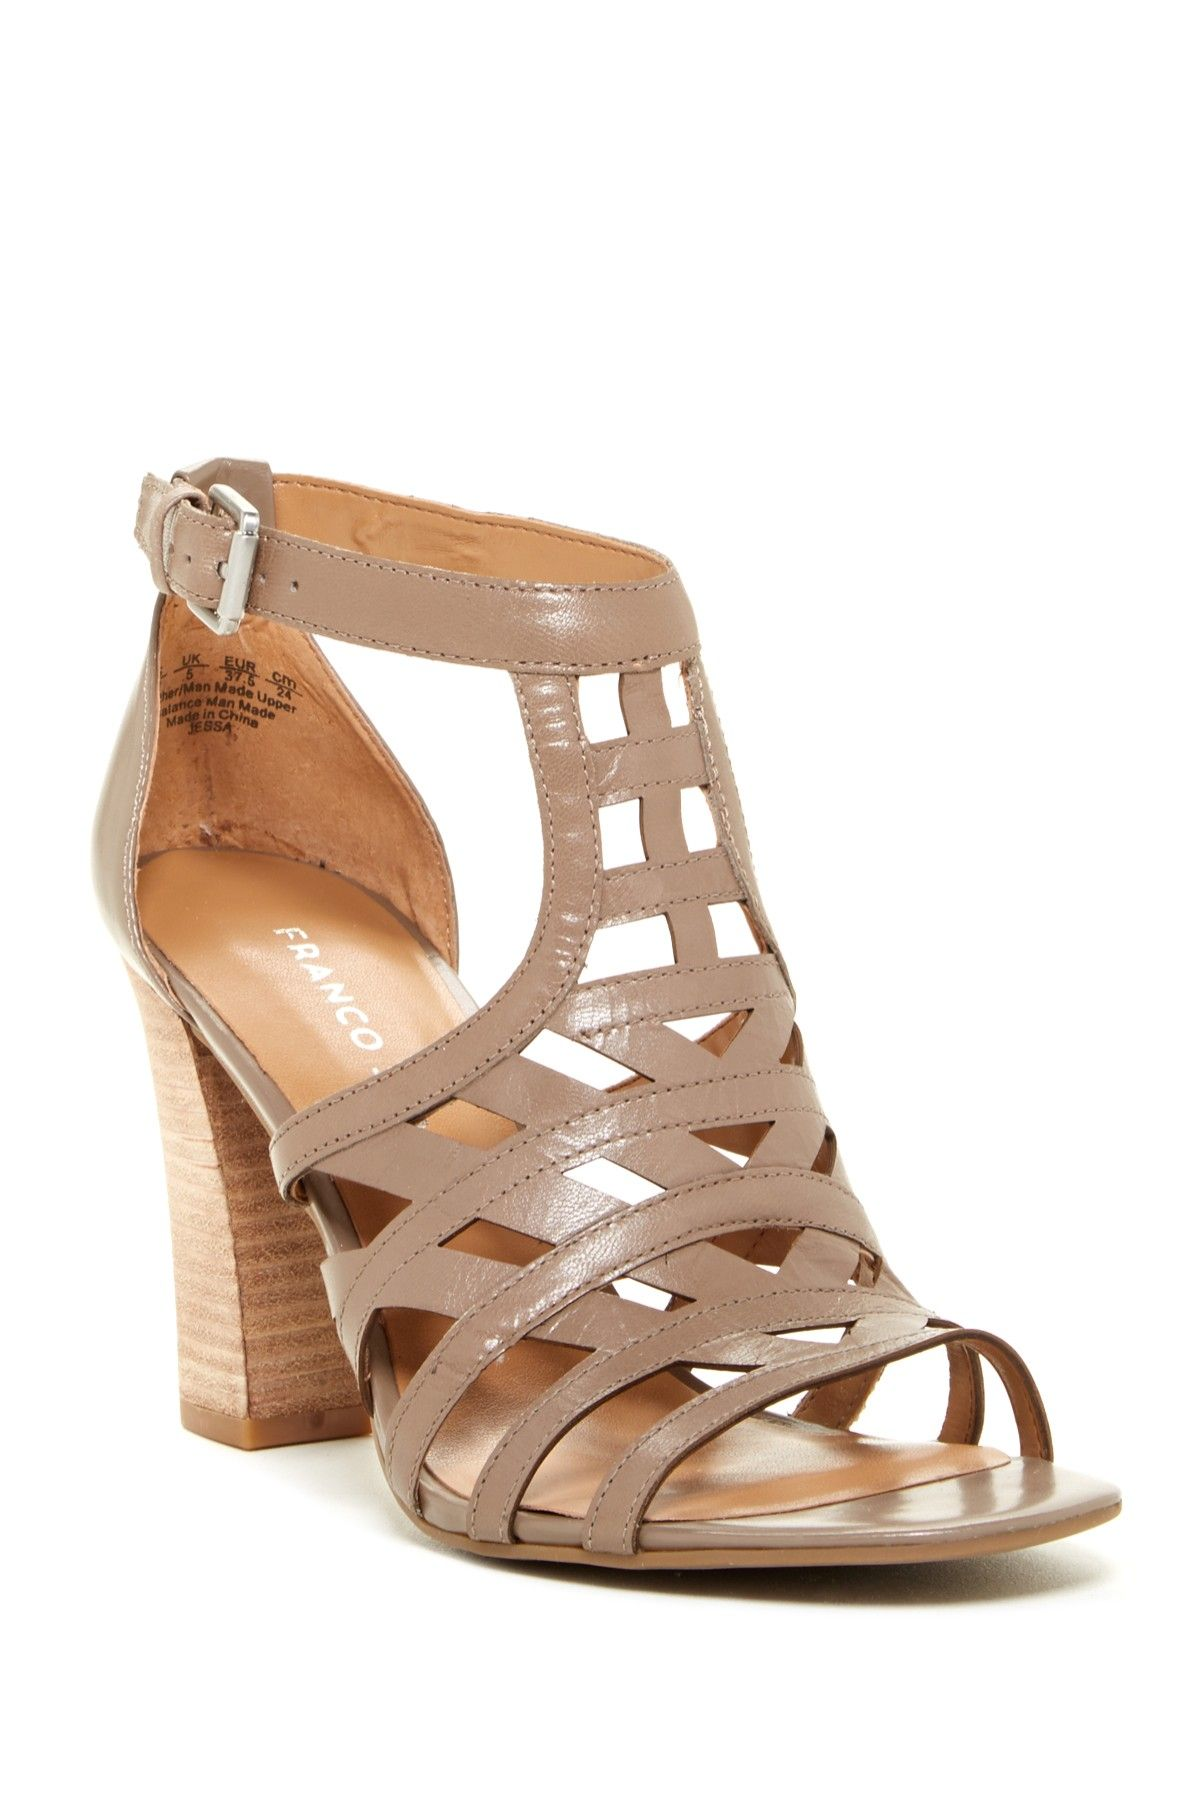 d5886bf950b Franco Sarto Jessa Sandal Brand new without tags! Leather and manmade  upper